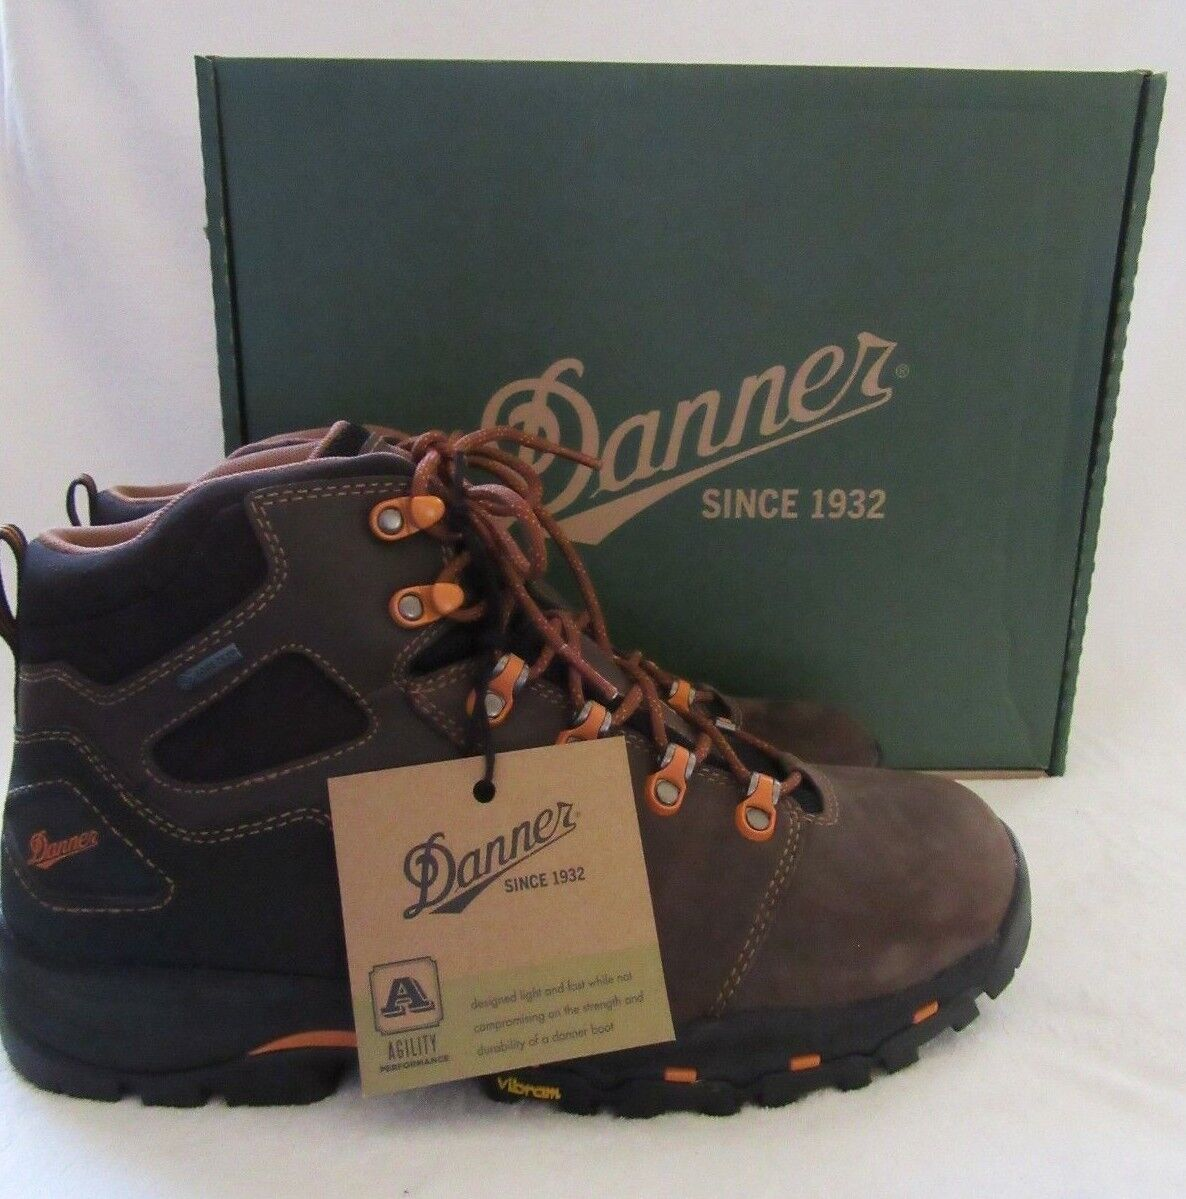 DANNER 13858 Vicious Waterproof Leather Work Boots shoes Size 11 D NWB